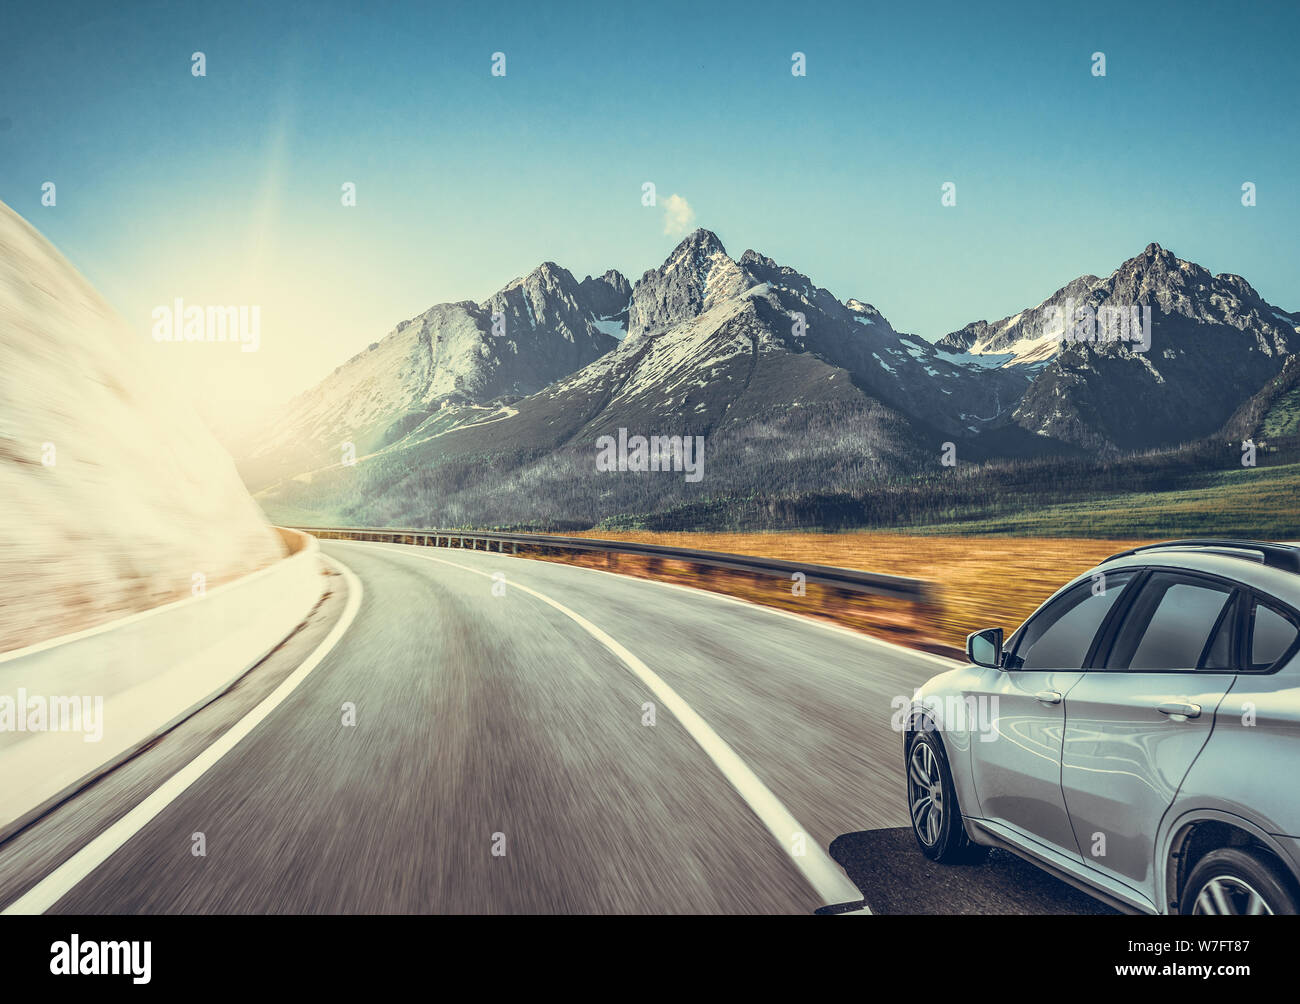 Highway among the mountain scenery. White car on a mountain road. Stock Photo